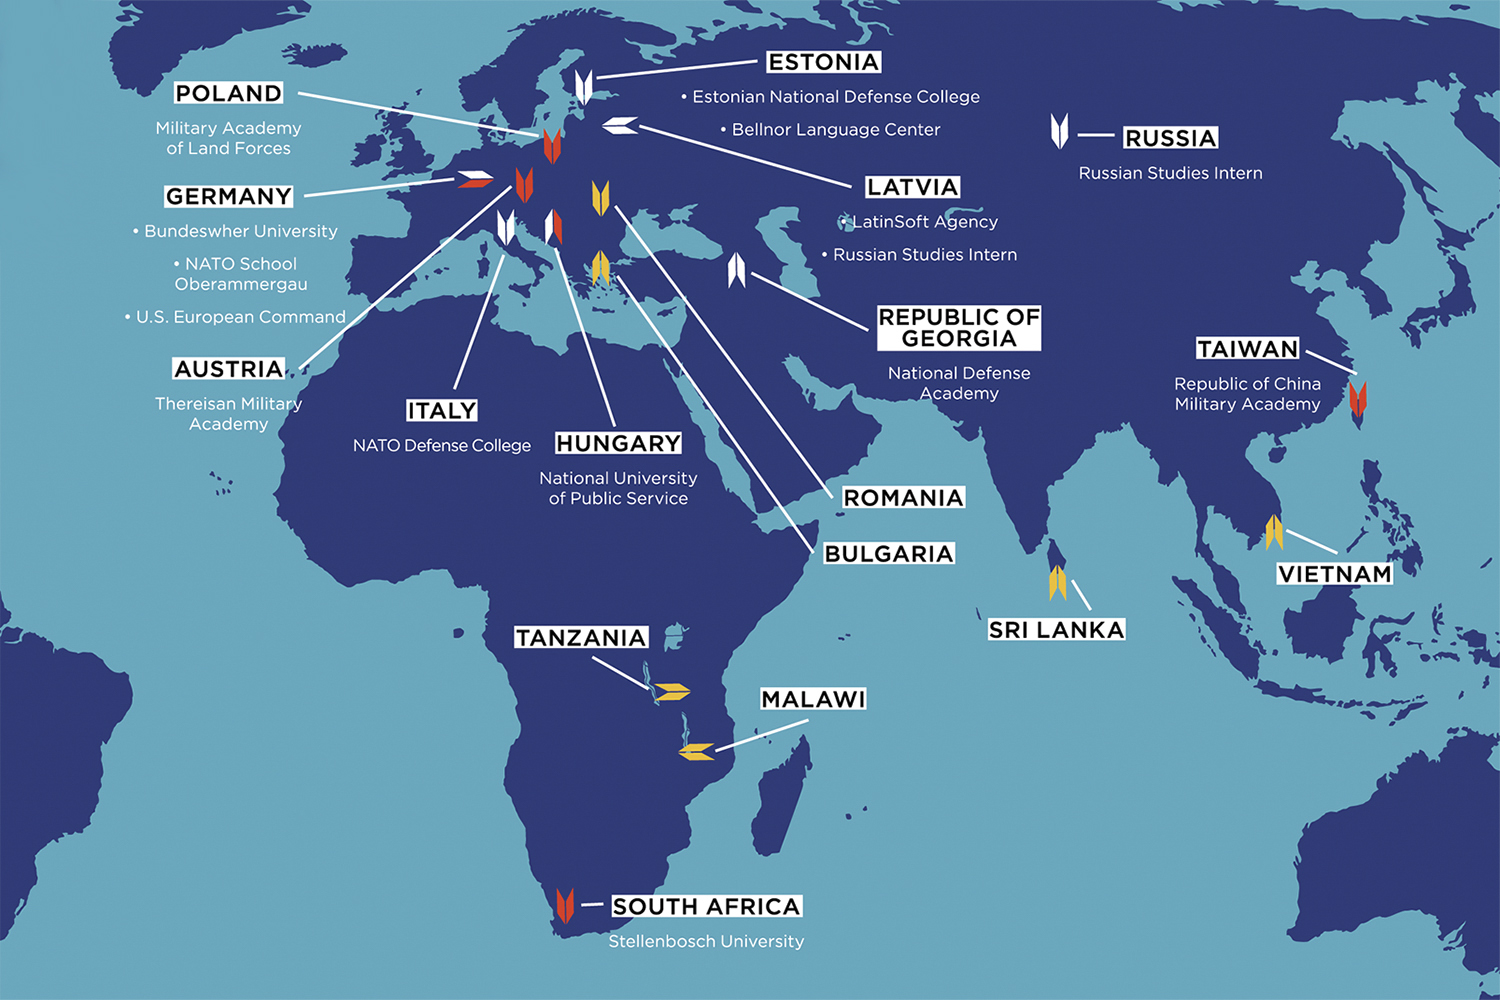 Study Abroad Locations - Eastern, Asian, and African